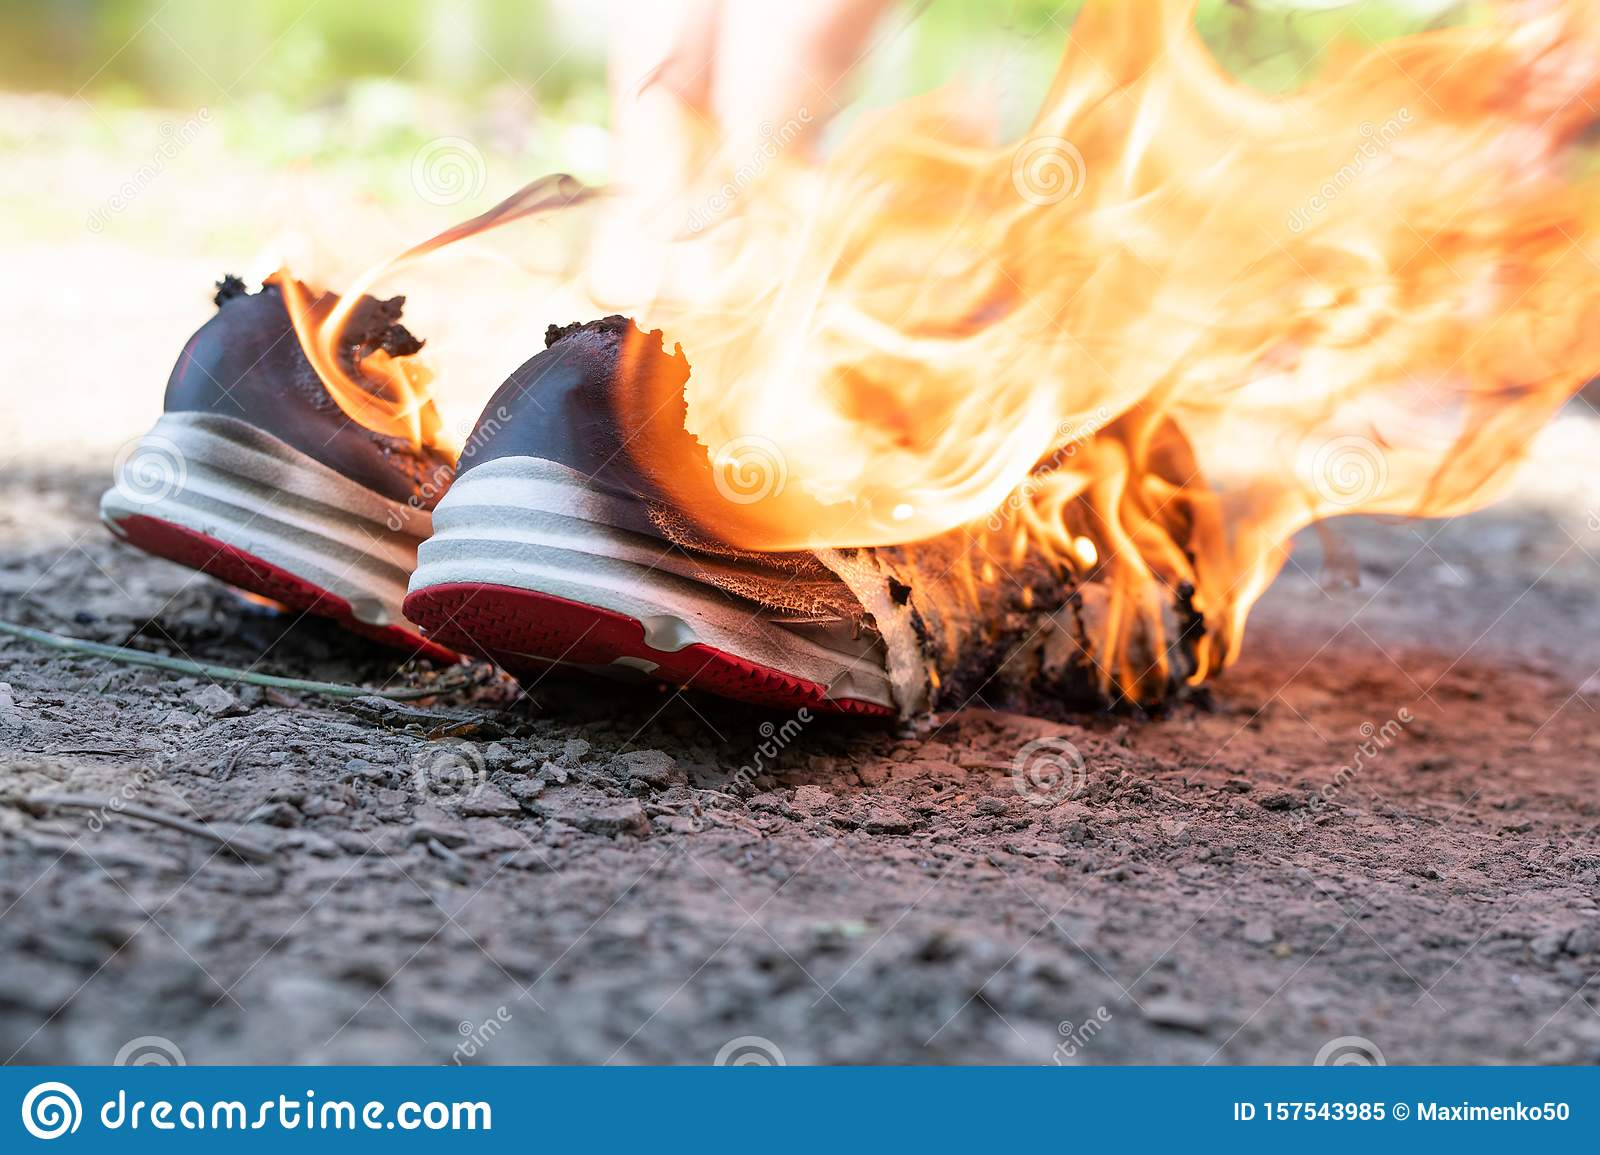 Burning Sneakers, Sports Shoes On Fire